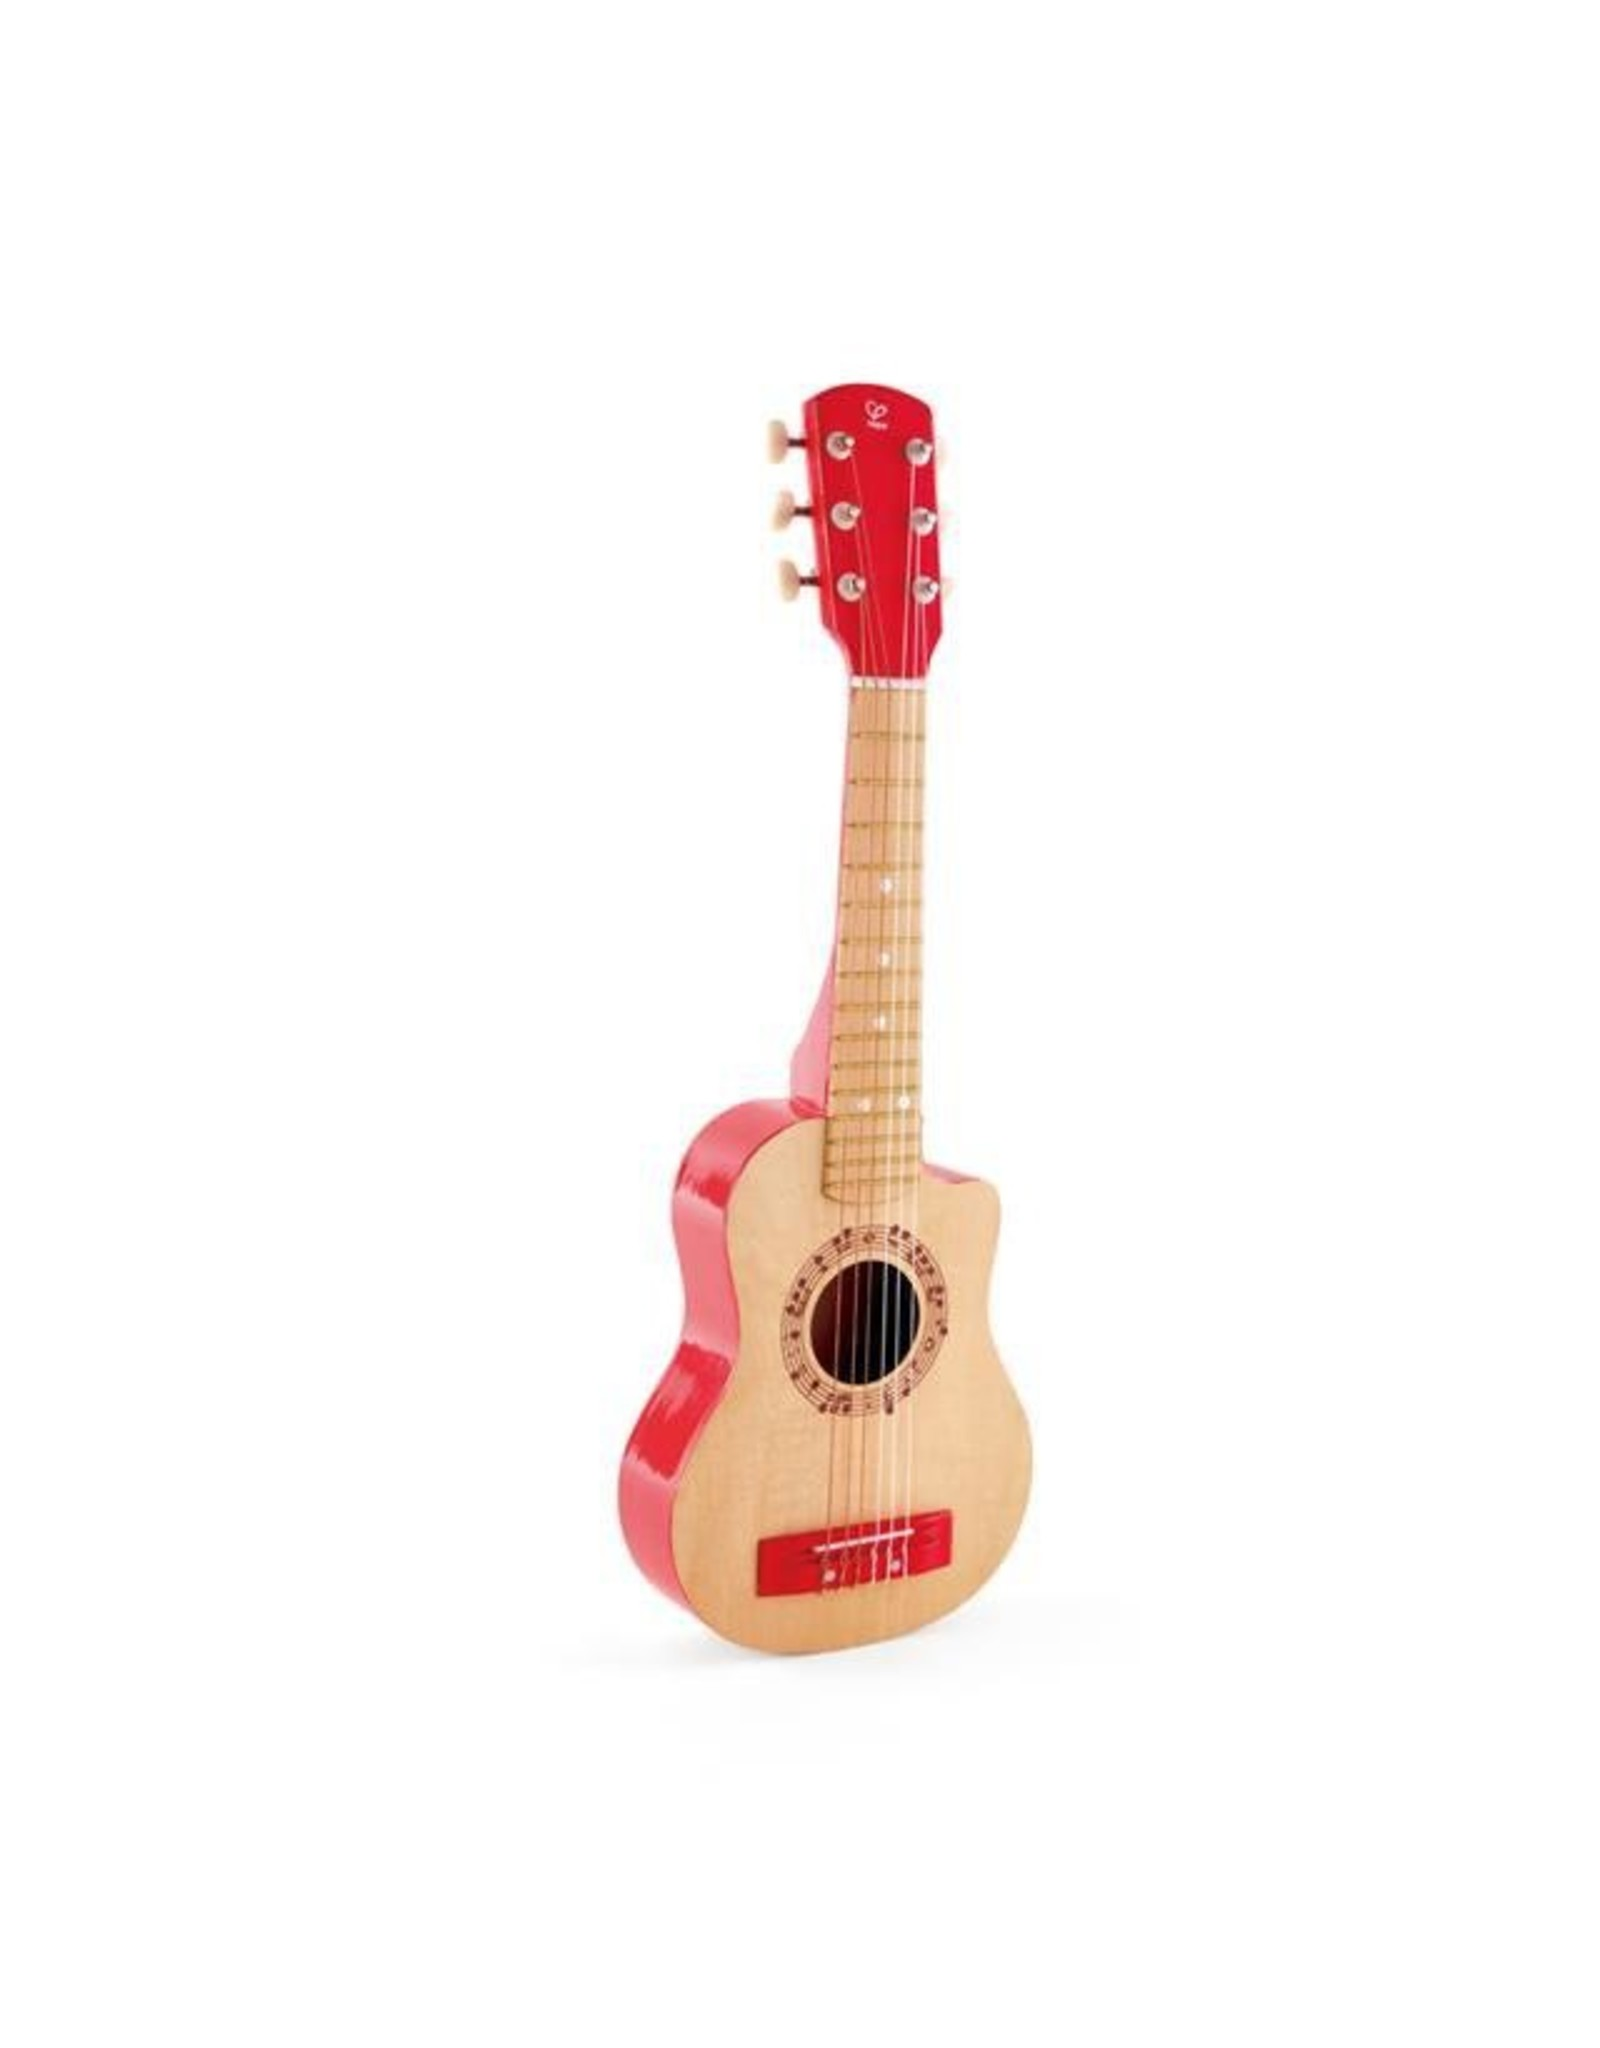 Hape VIBRANT RED GUITAR BY HAPE